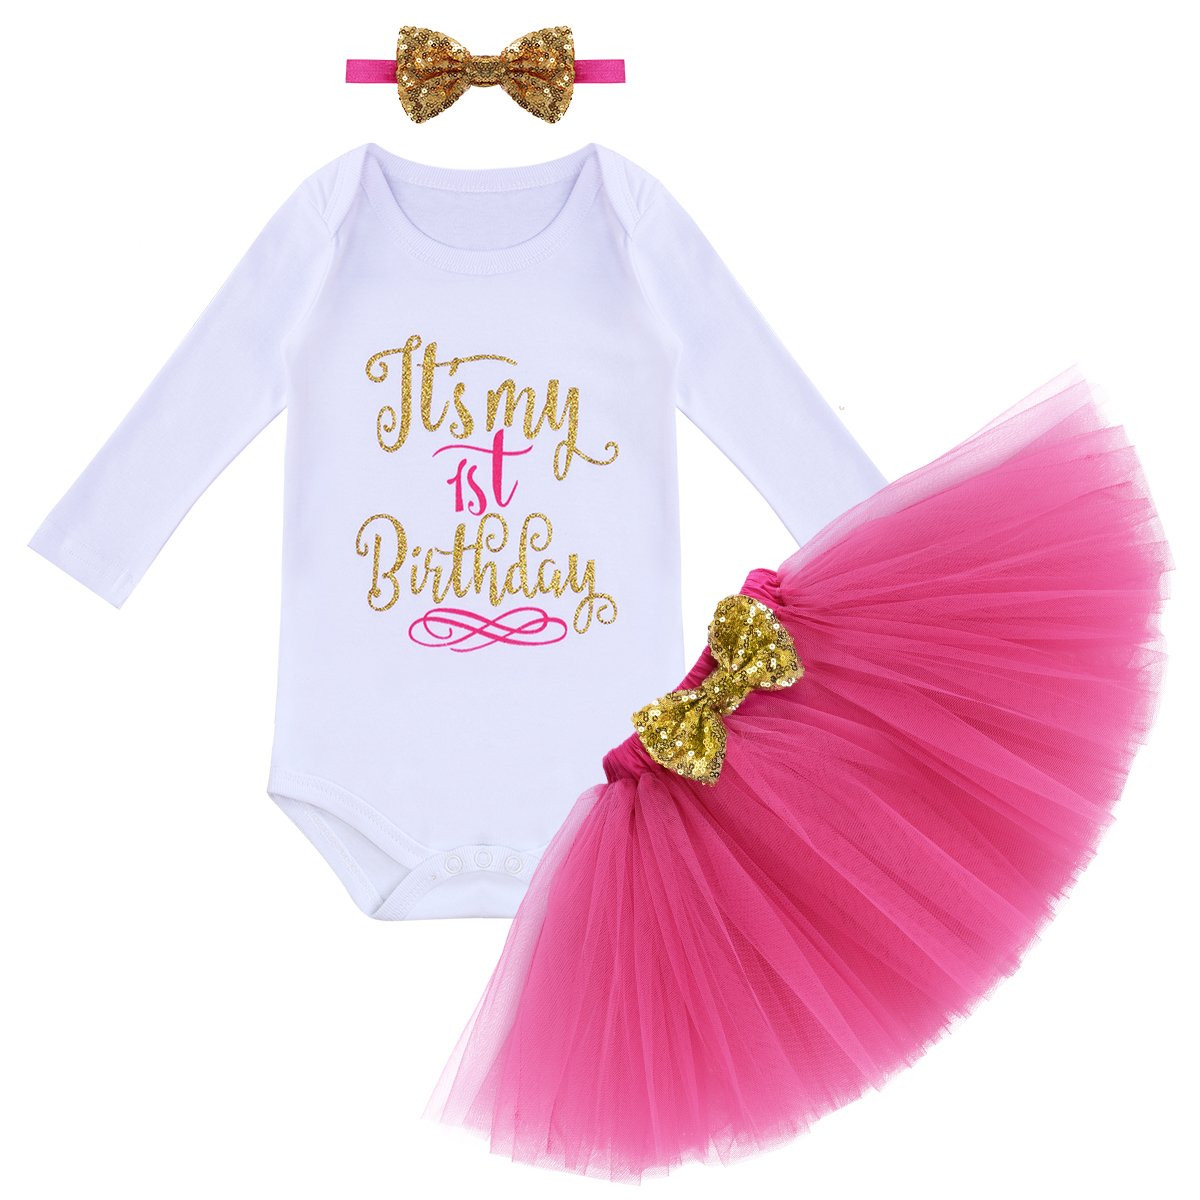 Infant Baby Girls Crown 1st Birthday Outfit Romper Jumpsuit Tulle Skirt Clothes